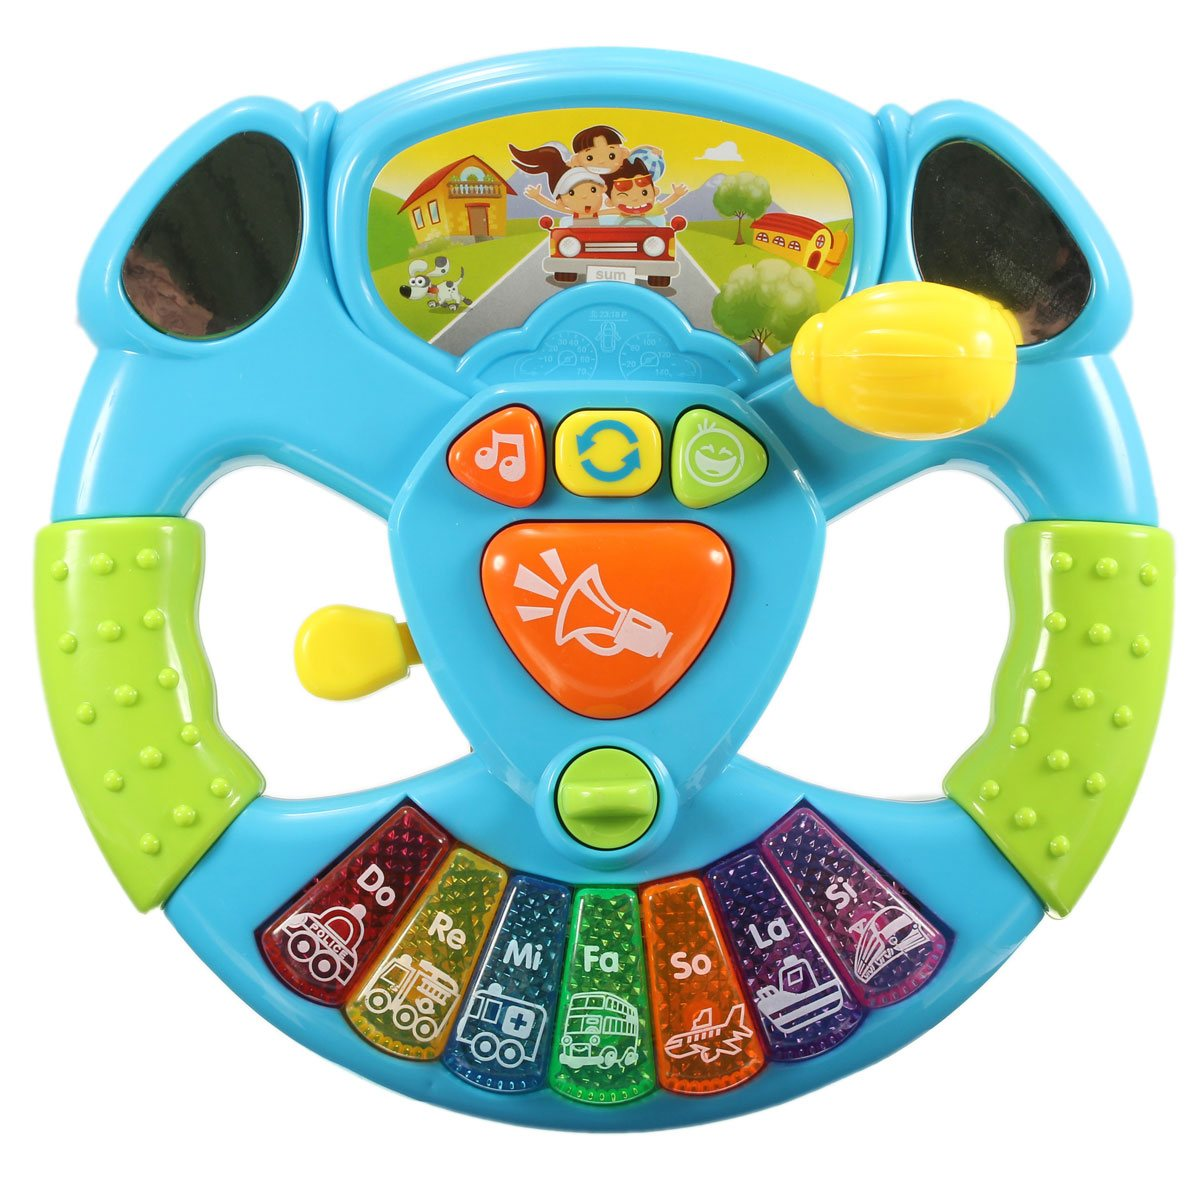 Music Lights Transportation Tools Education Intelligence Toys Baby Multifunctional Steering Wheel Toys with Electronic Button